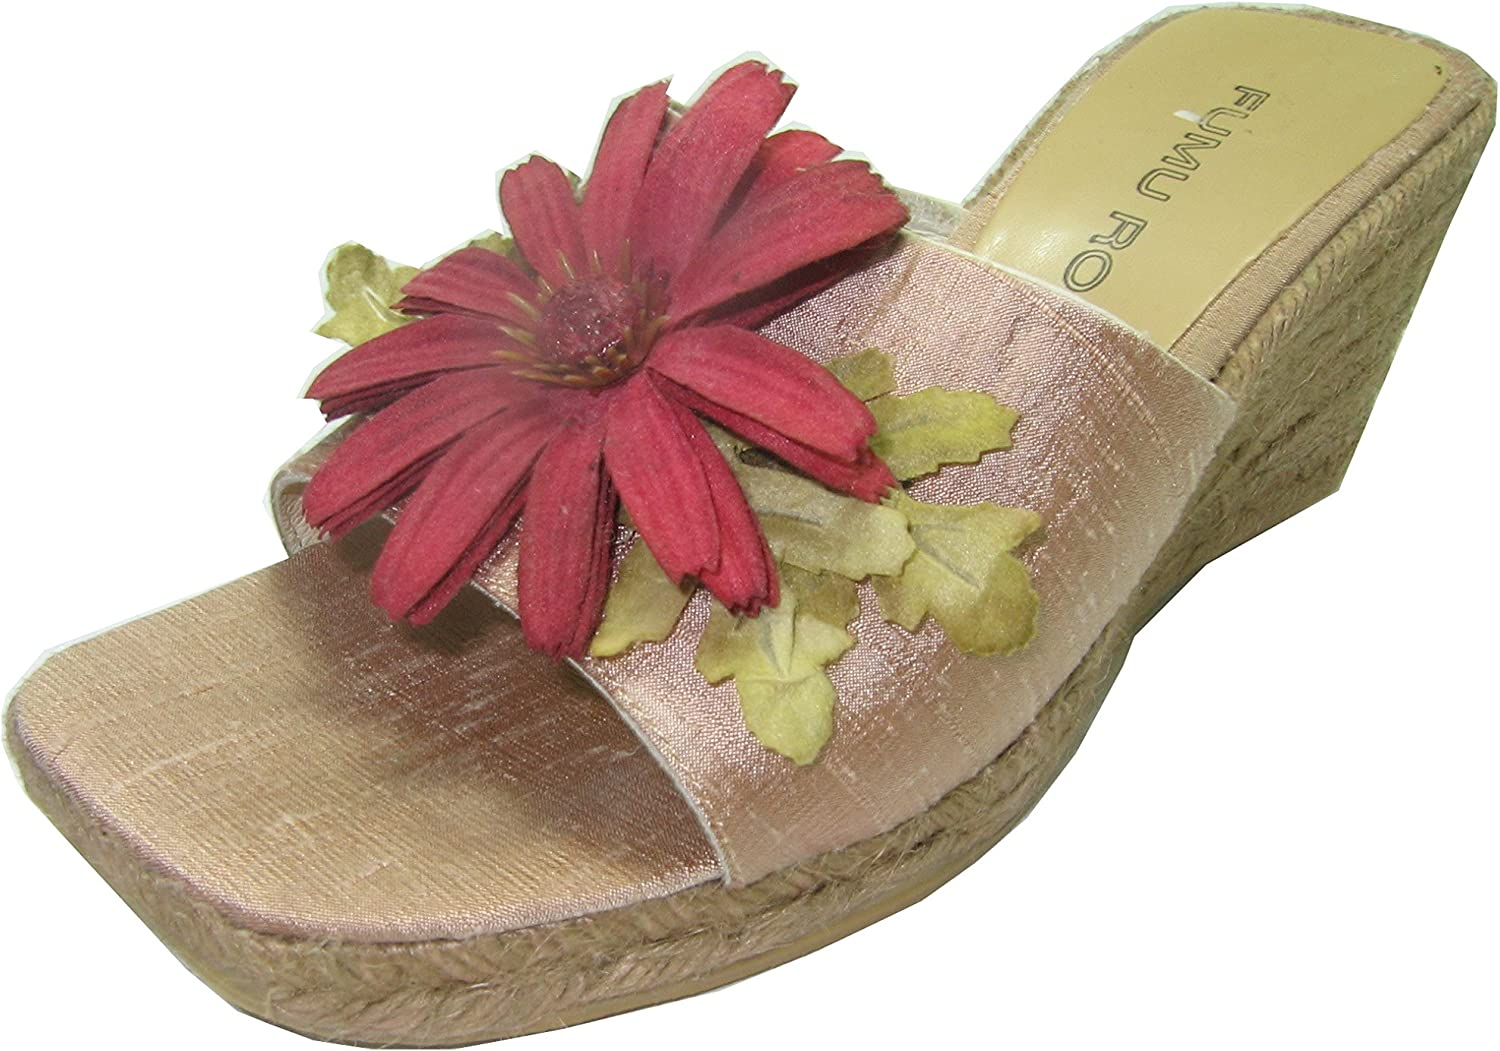 Fumu Roi Wedge Mule Sandal Heels shoes Tan Silk Taffeta Size 7m